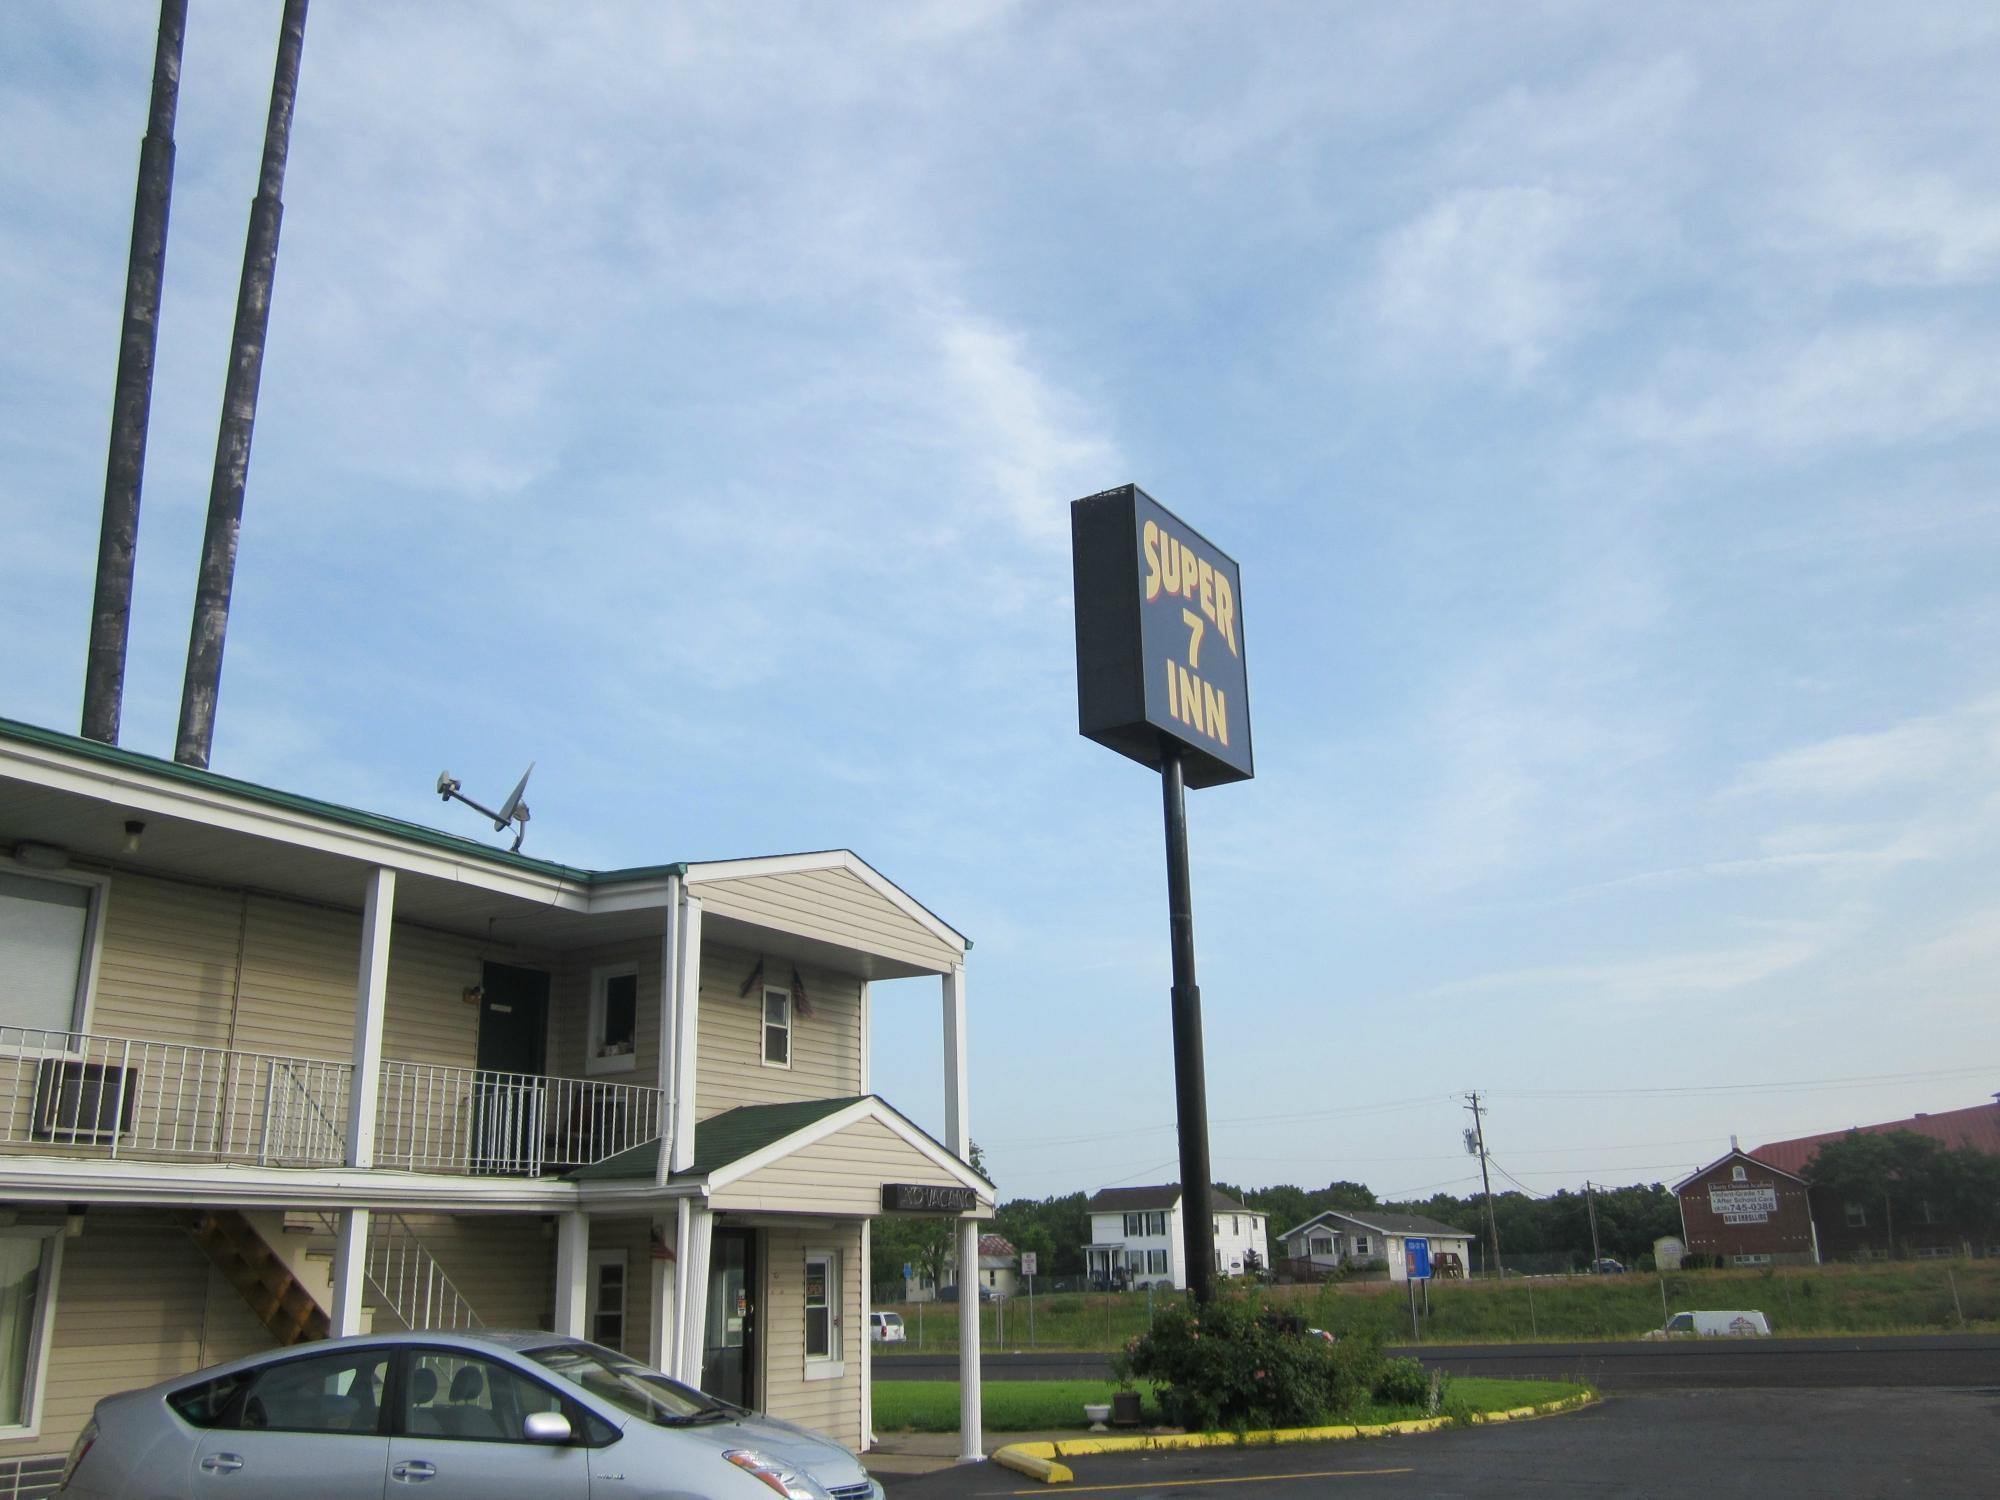 Book Super 7 Inn, Wright City, Missouri - Hotels.com